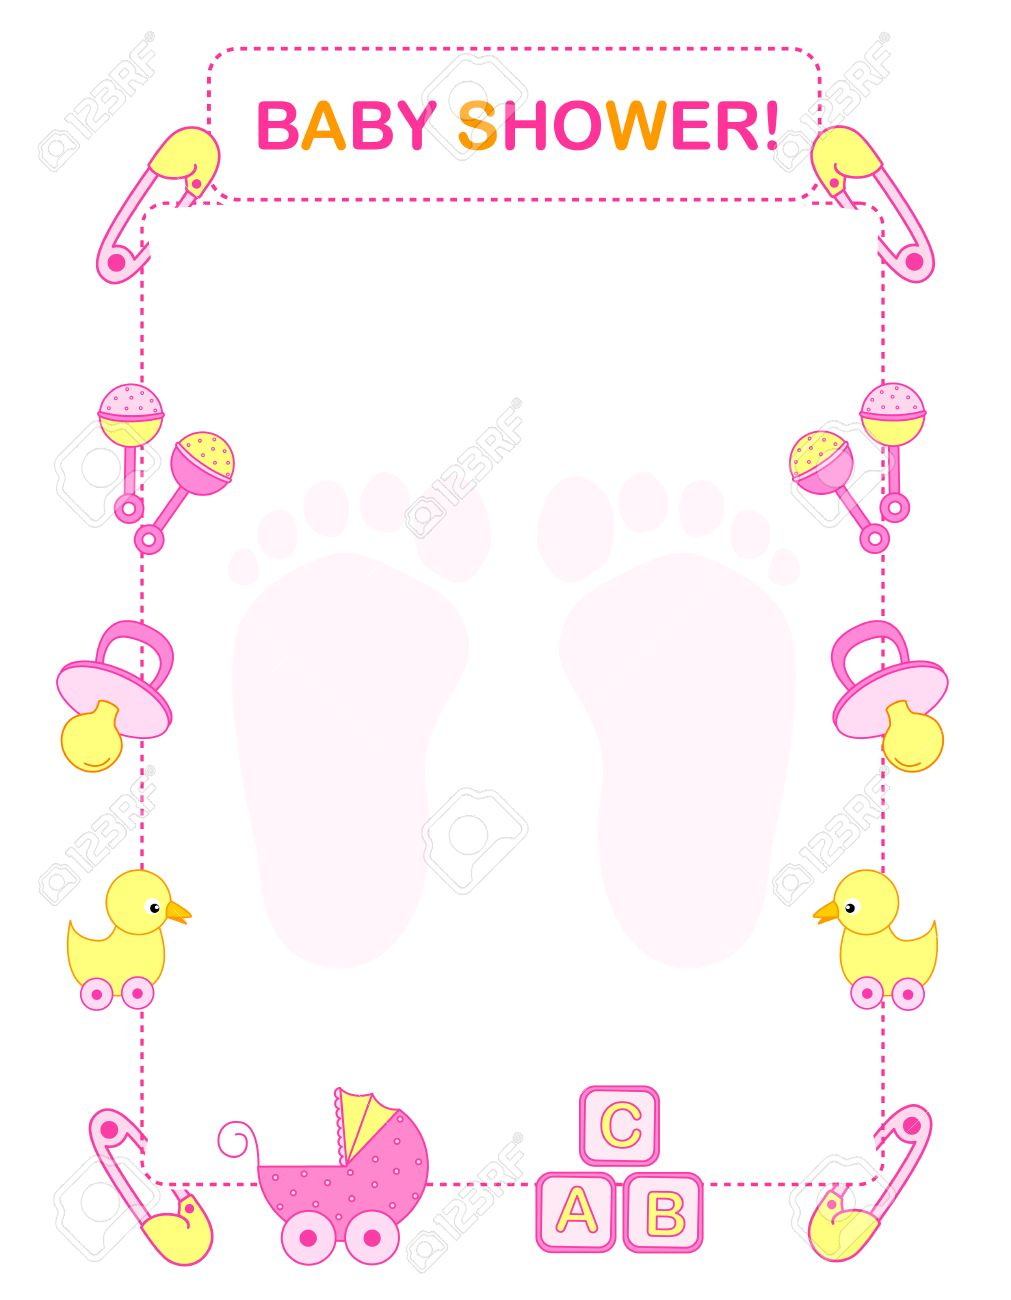 illustration of a baby shower invitation card border frame rh 123rf com baby shower invitations clipart free baby shower invitation border clip art